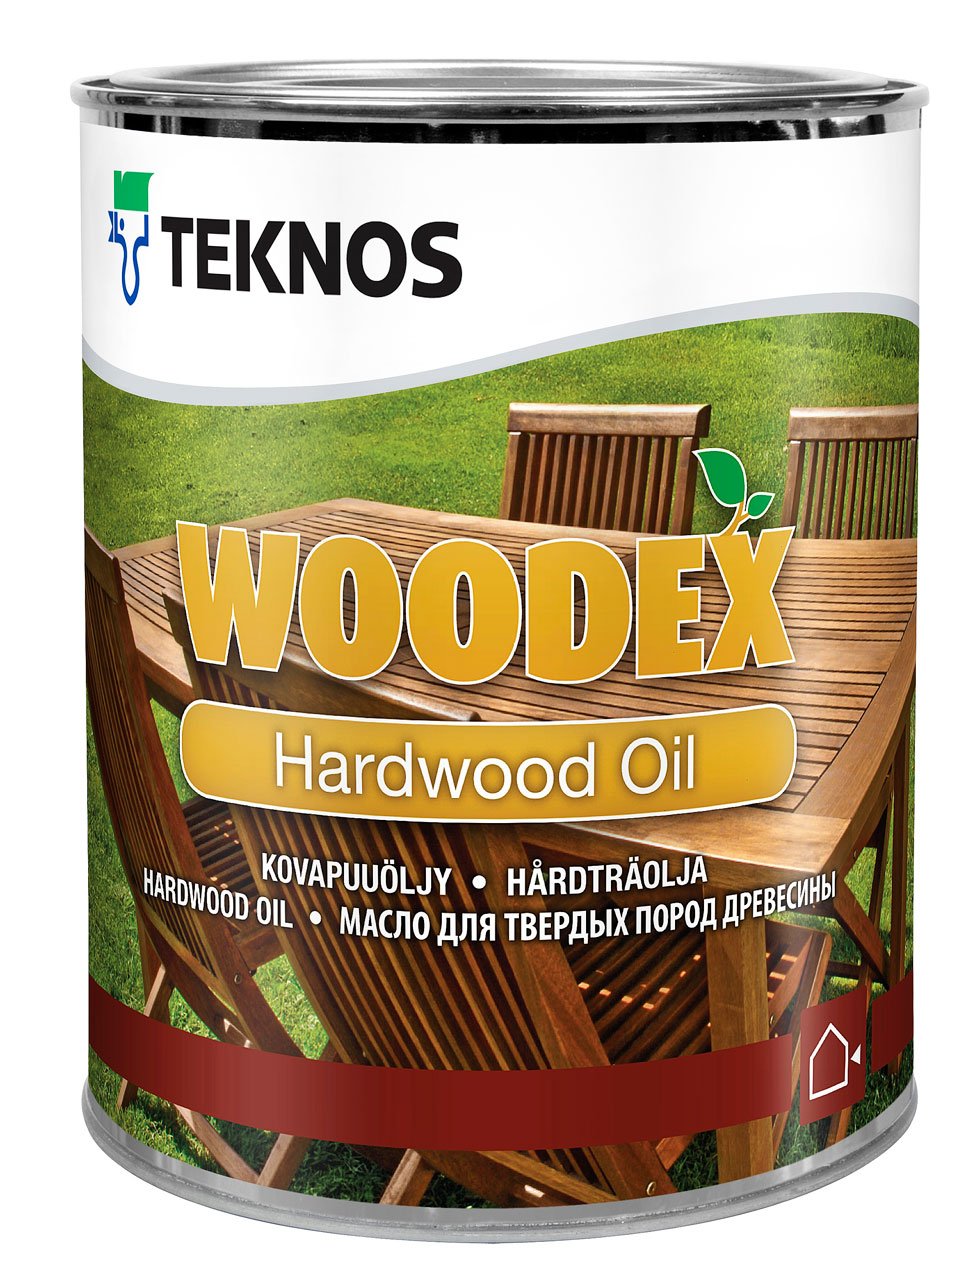 Woodex Harwood Oil